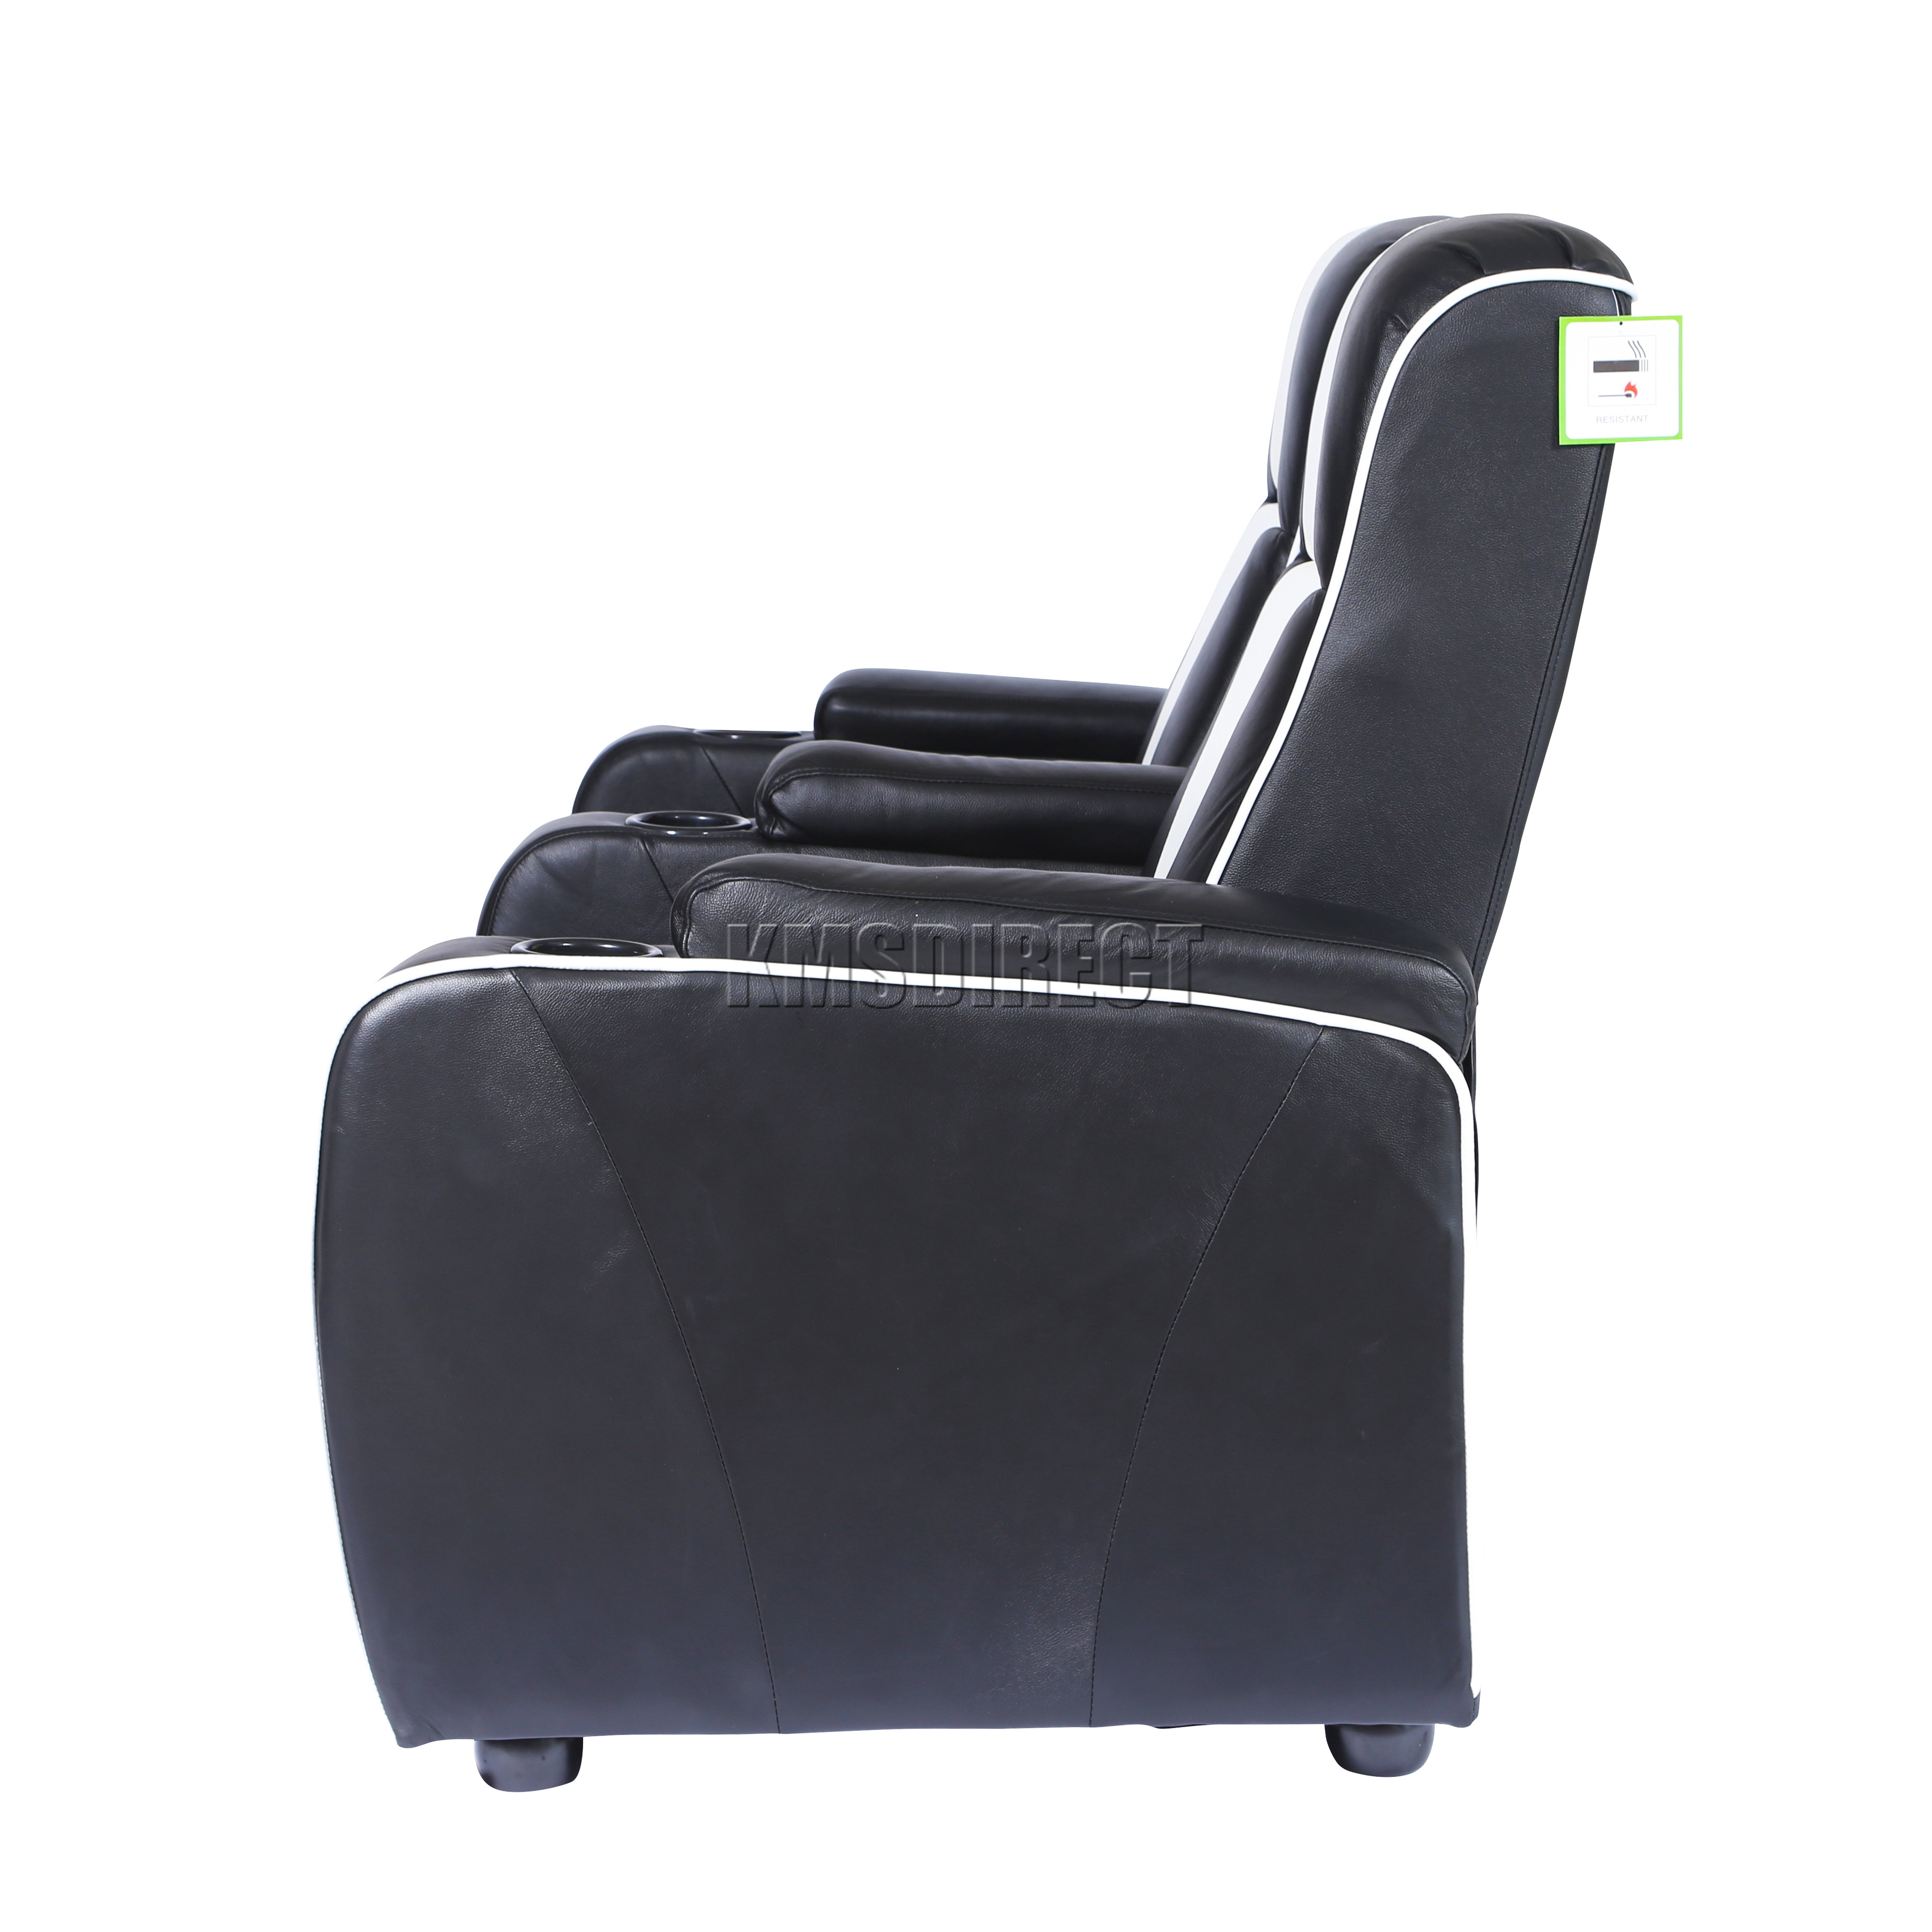 electric recliner sofa not working simmons bonded leather sectional foxhunter retro cinema movie chair 2 seat